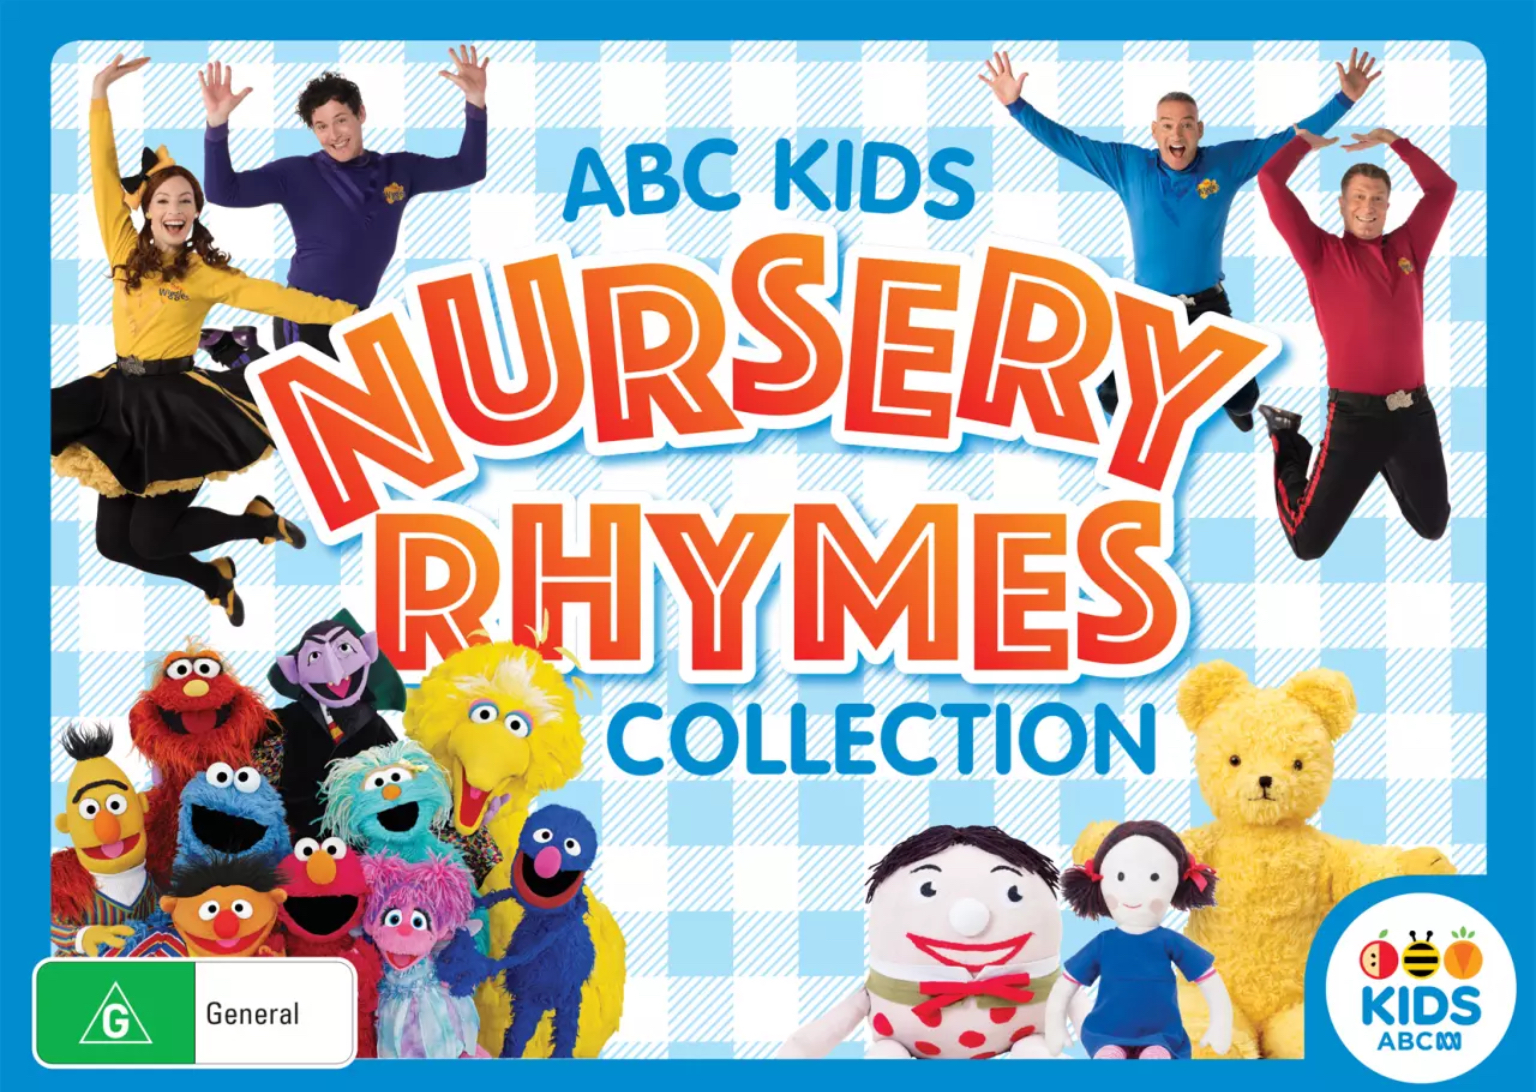 ABC Kids Nursery Rhymes Collection